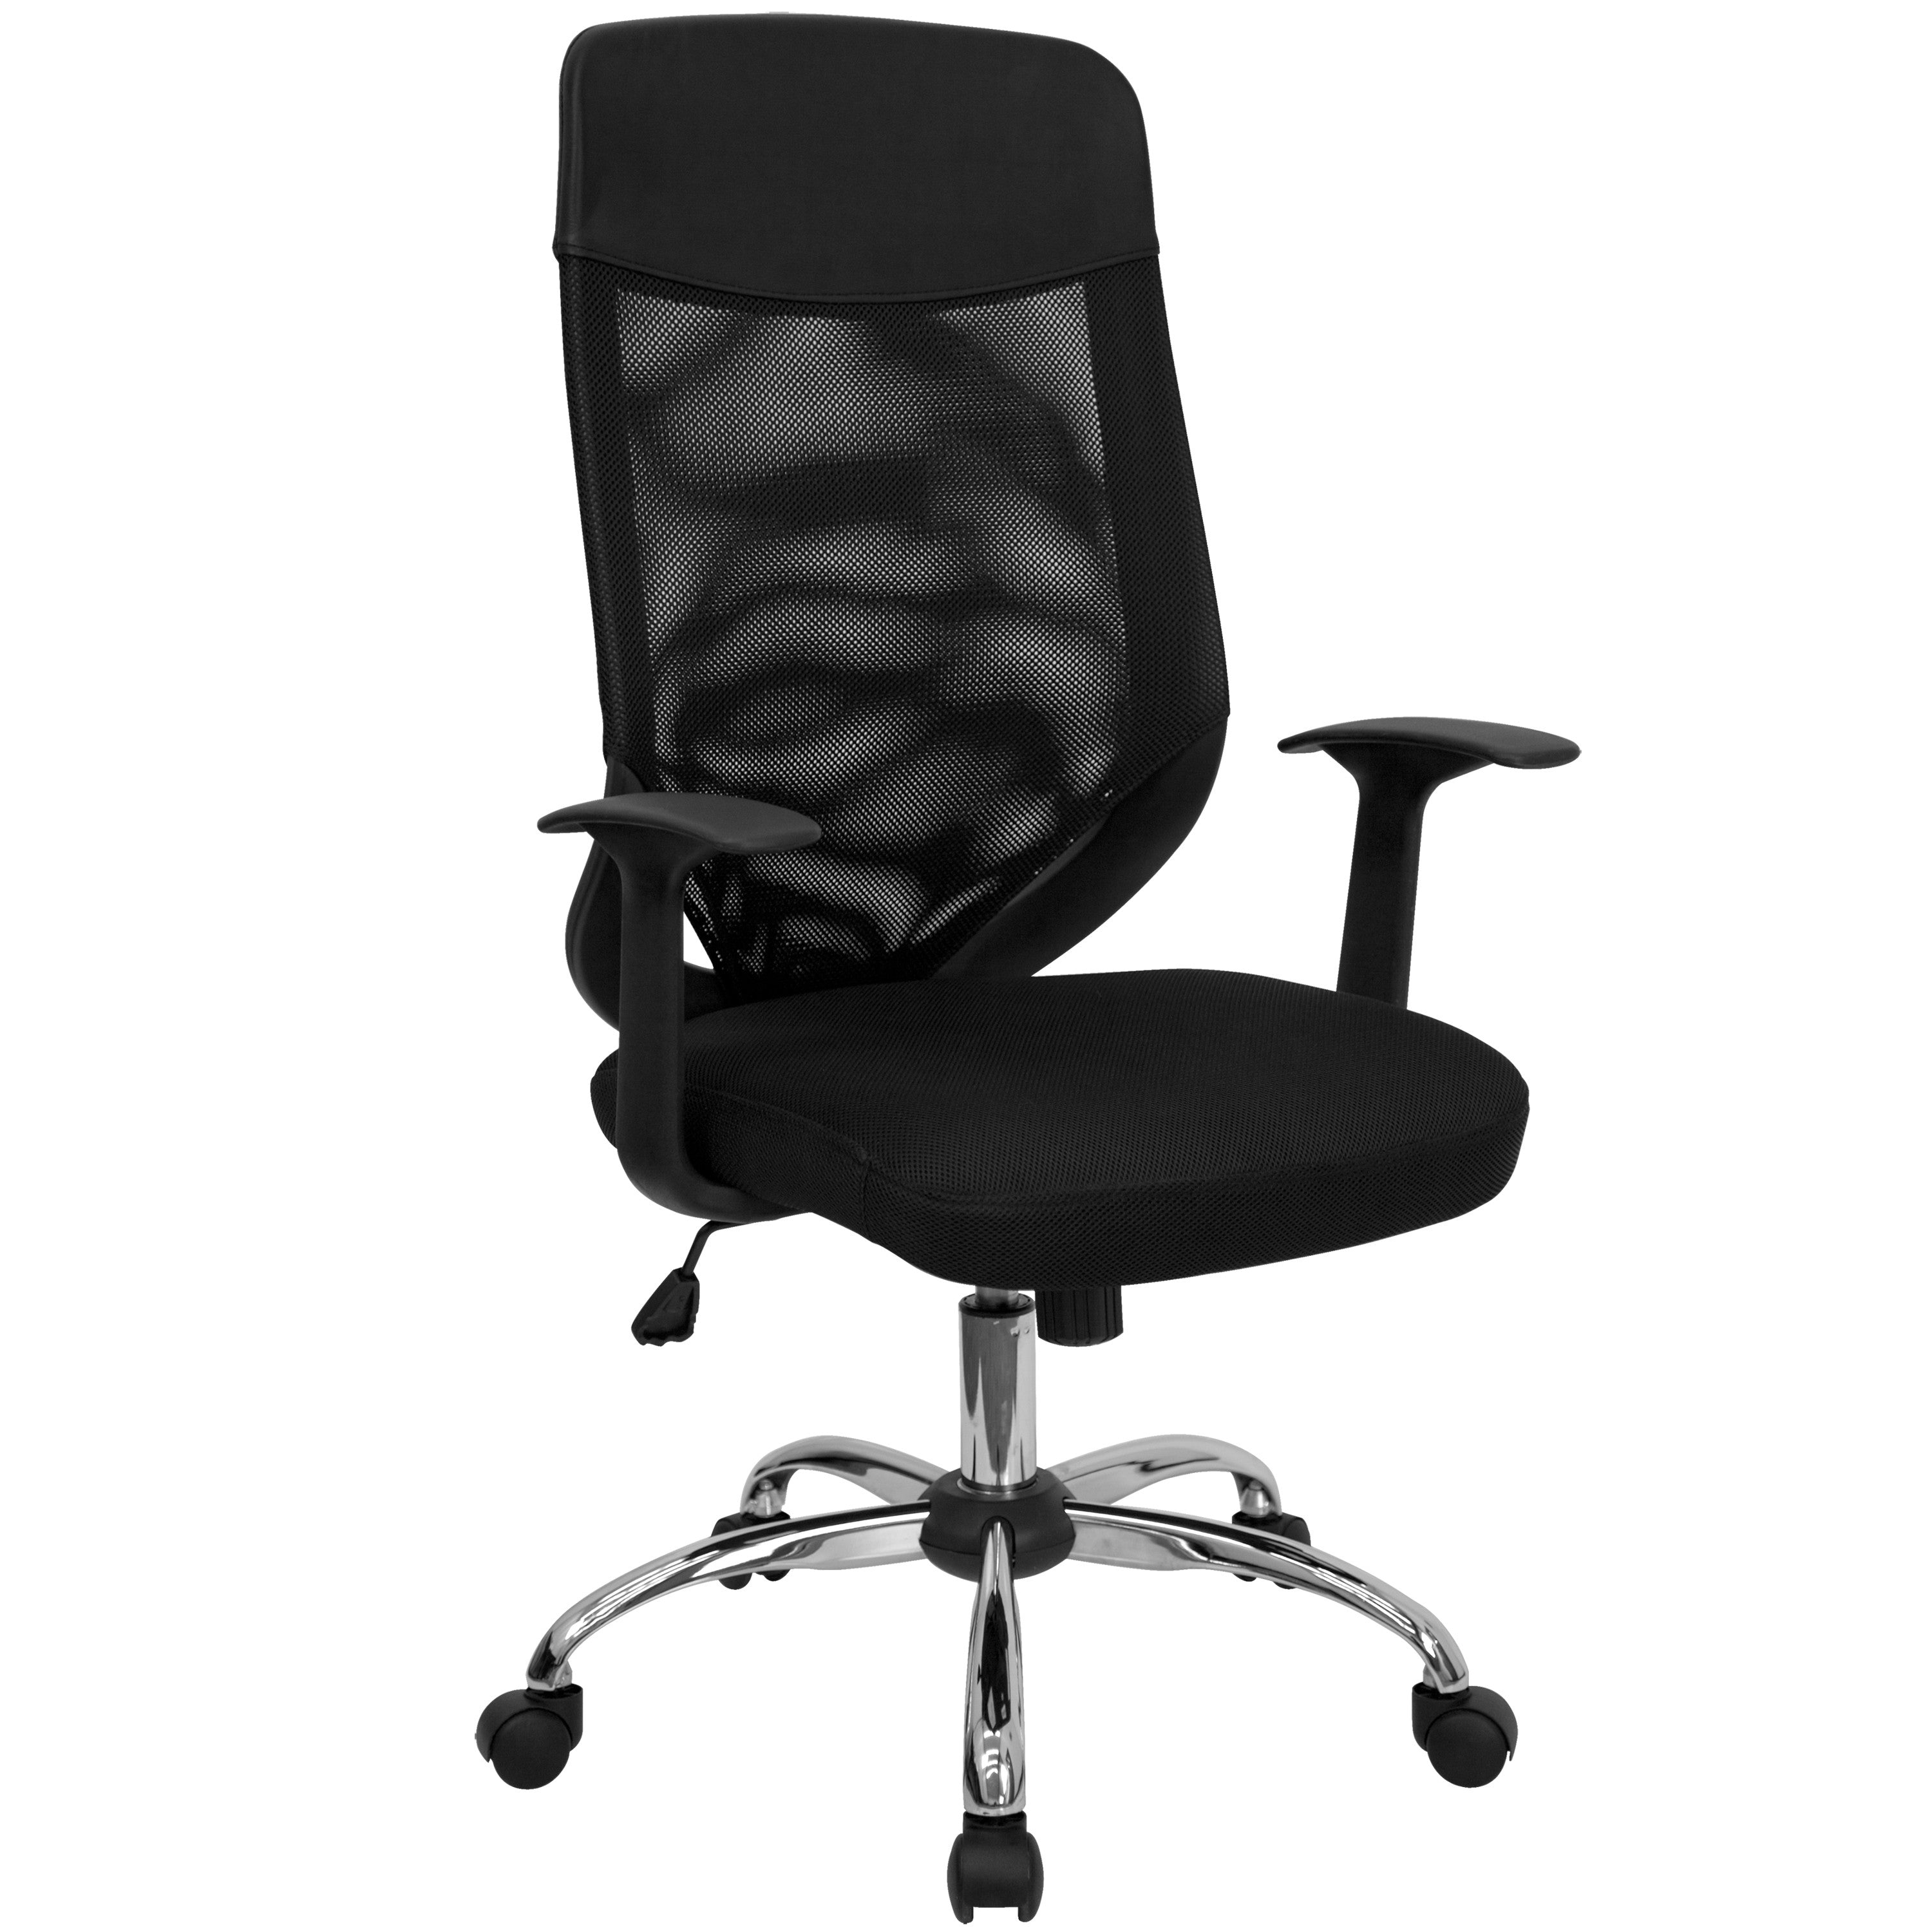 Desk stools are perfect for comfortable work best computer chairs - For A Contemporary And Stylish Mesh Computer Chair For Your Home Or Office This Comfortably